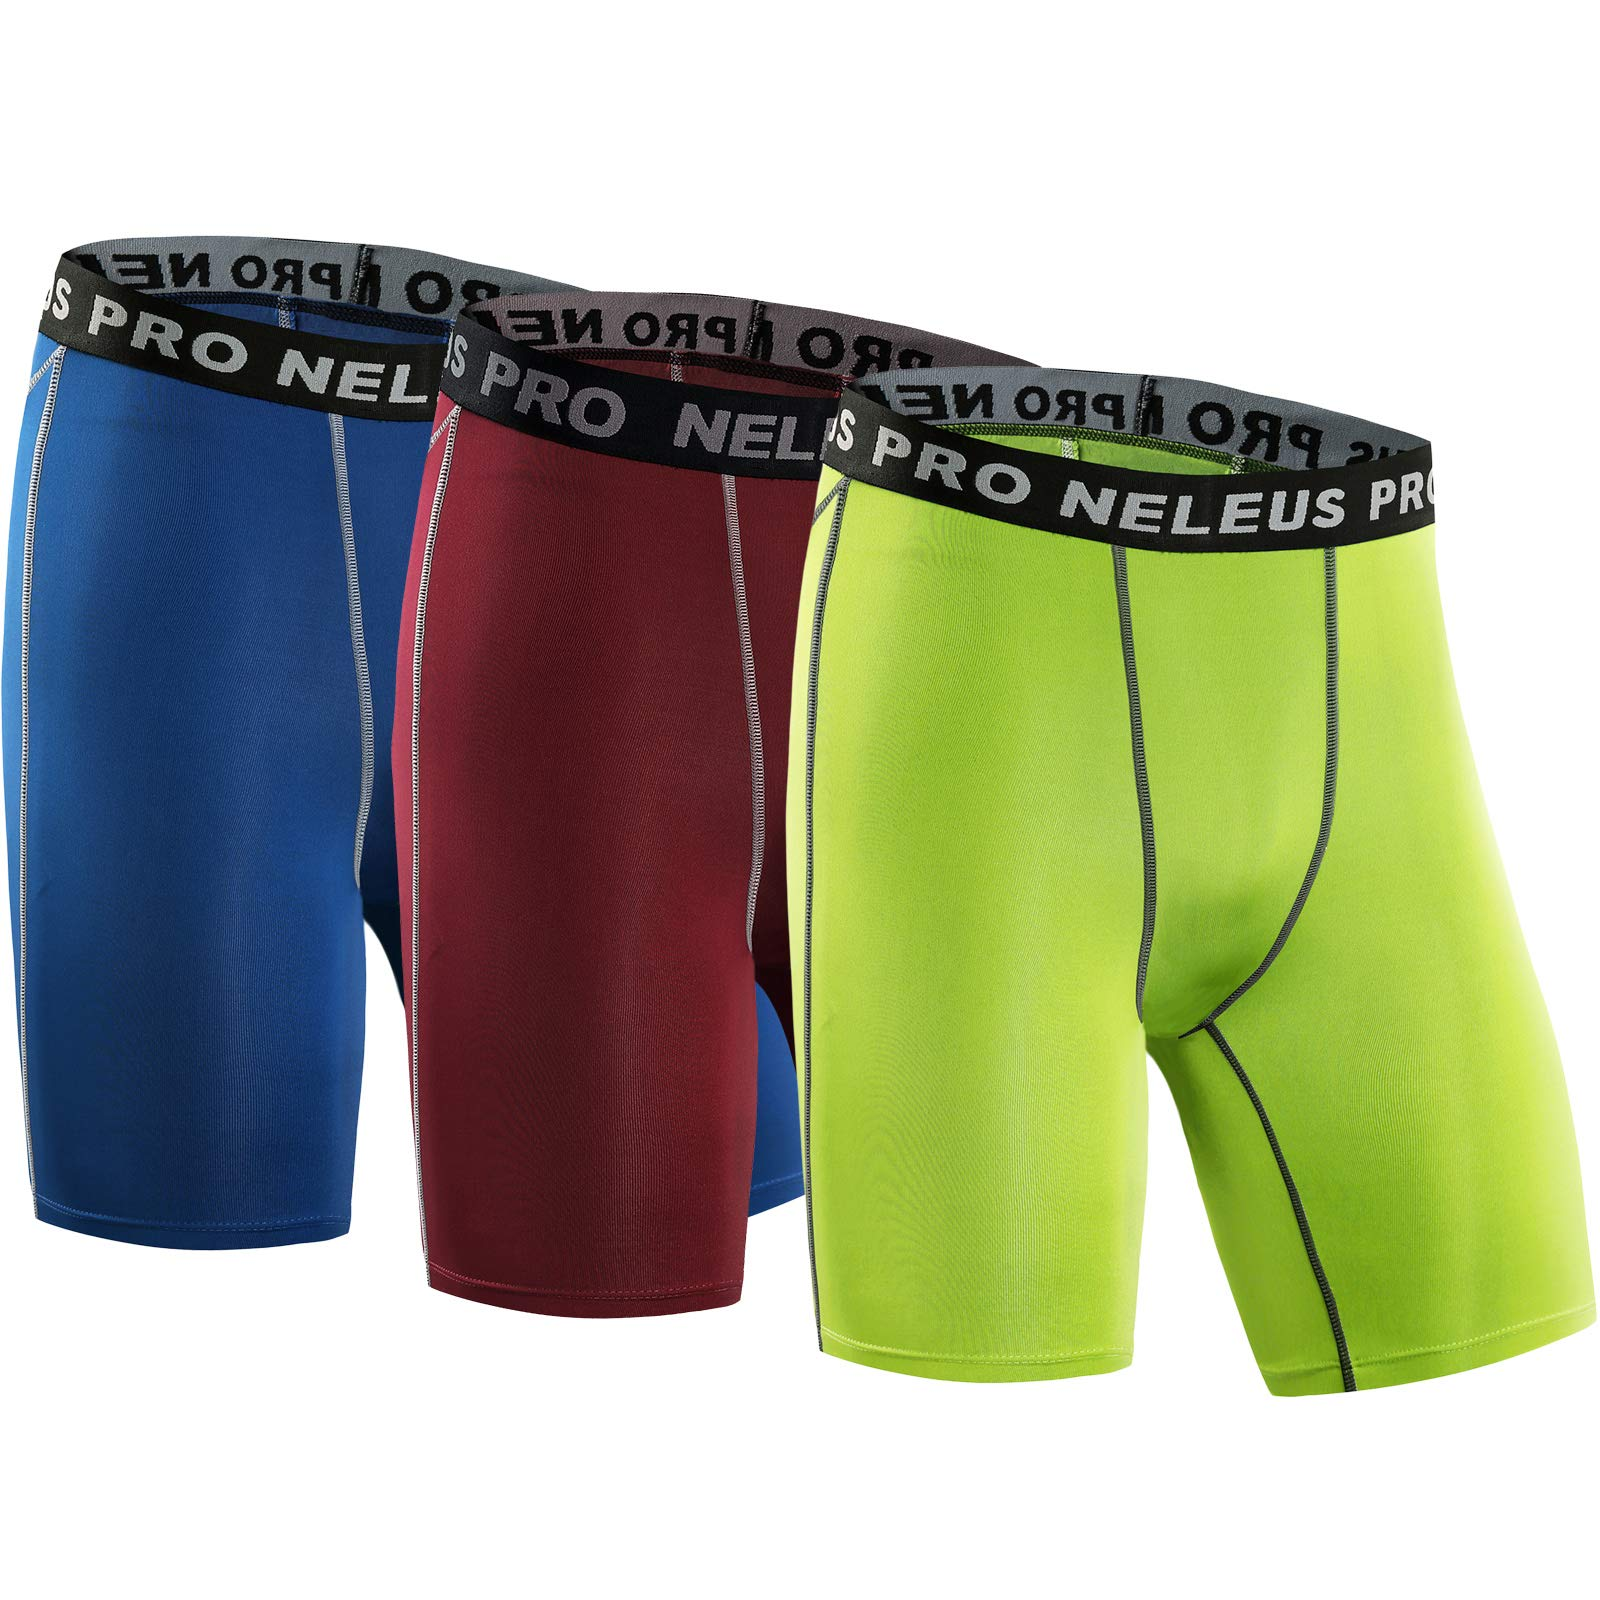 Neleus Men's 3 Pack Compression Short,047,Blue,Red,Green,US S,EU M by Neleus